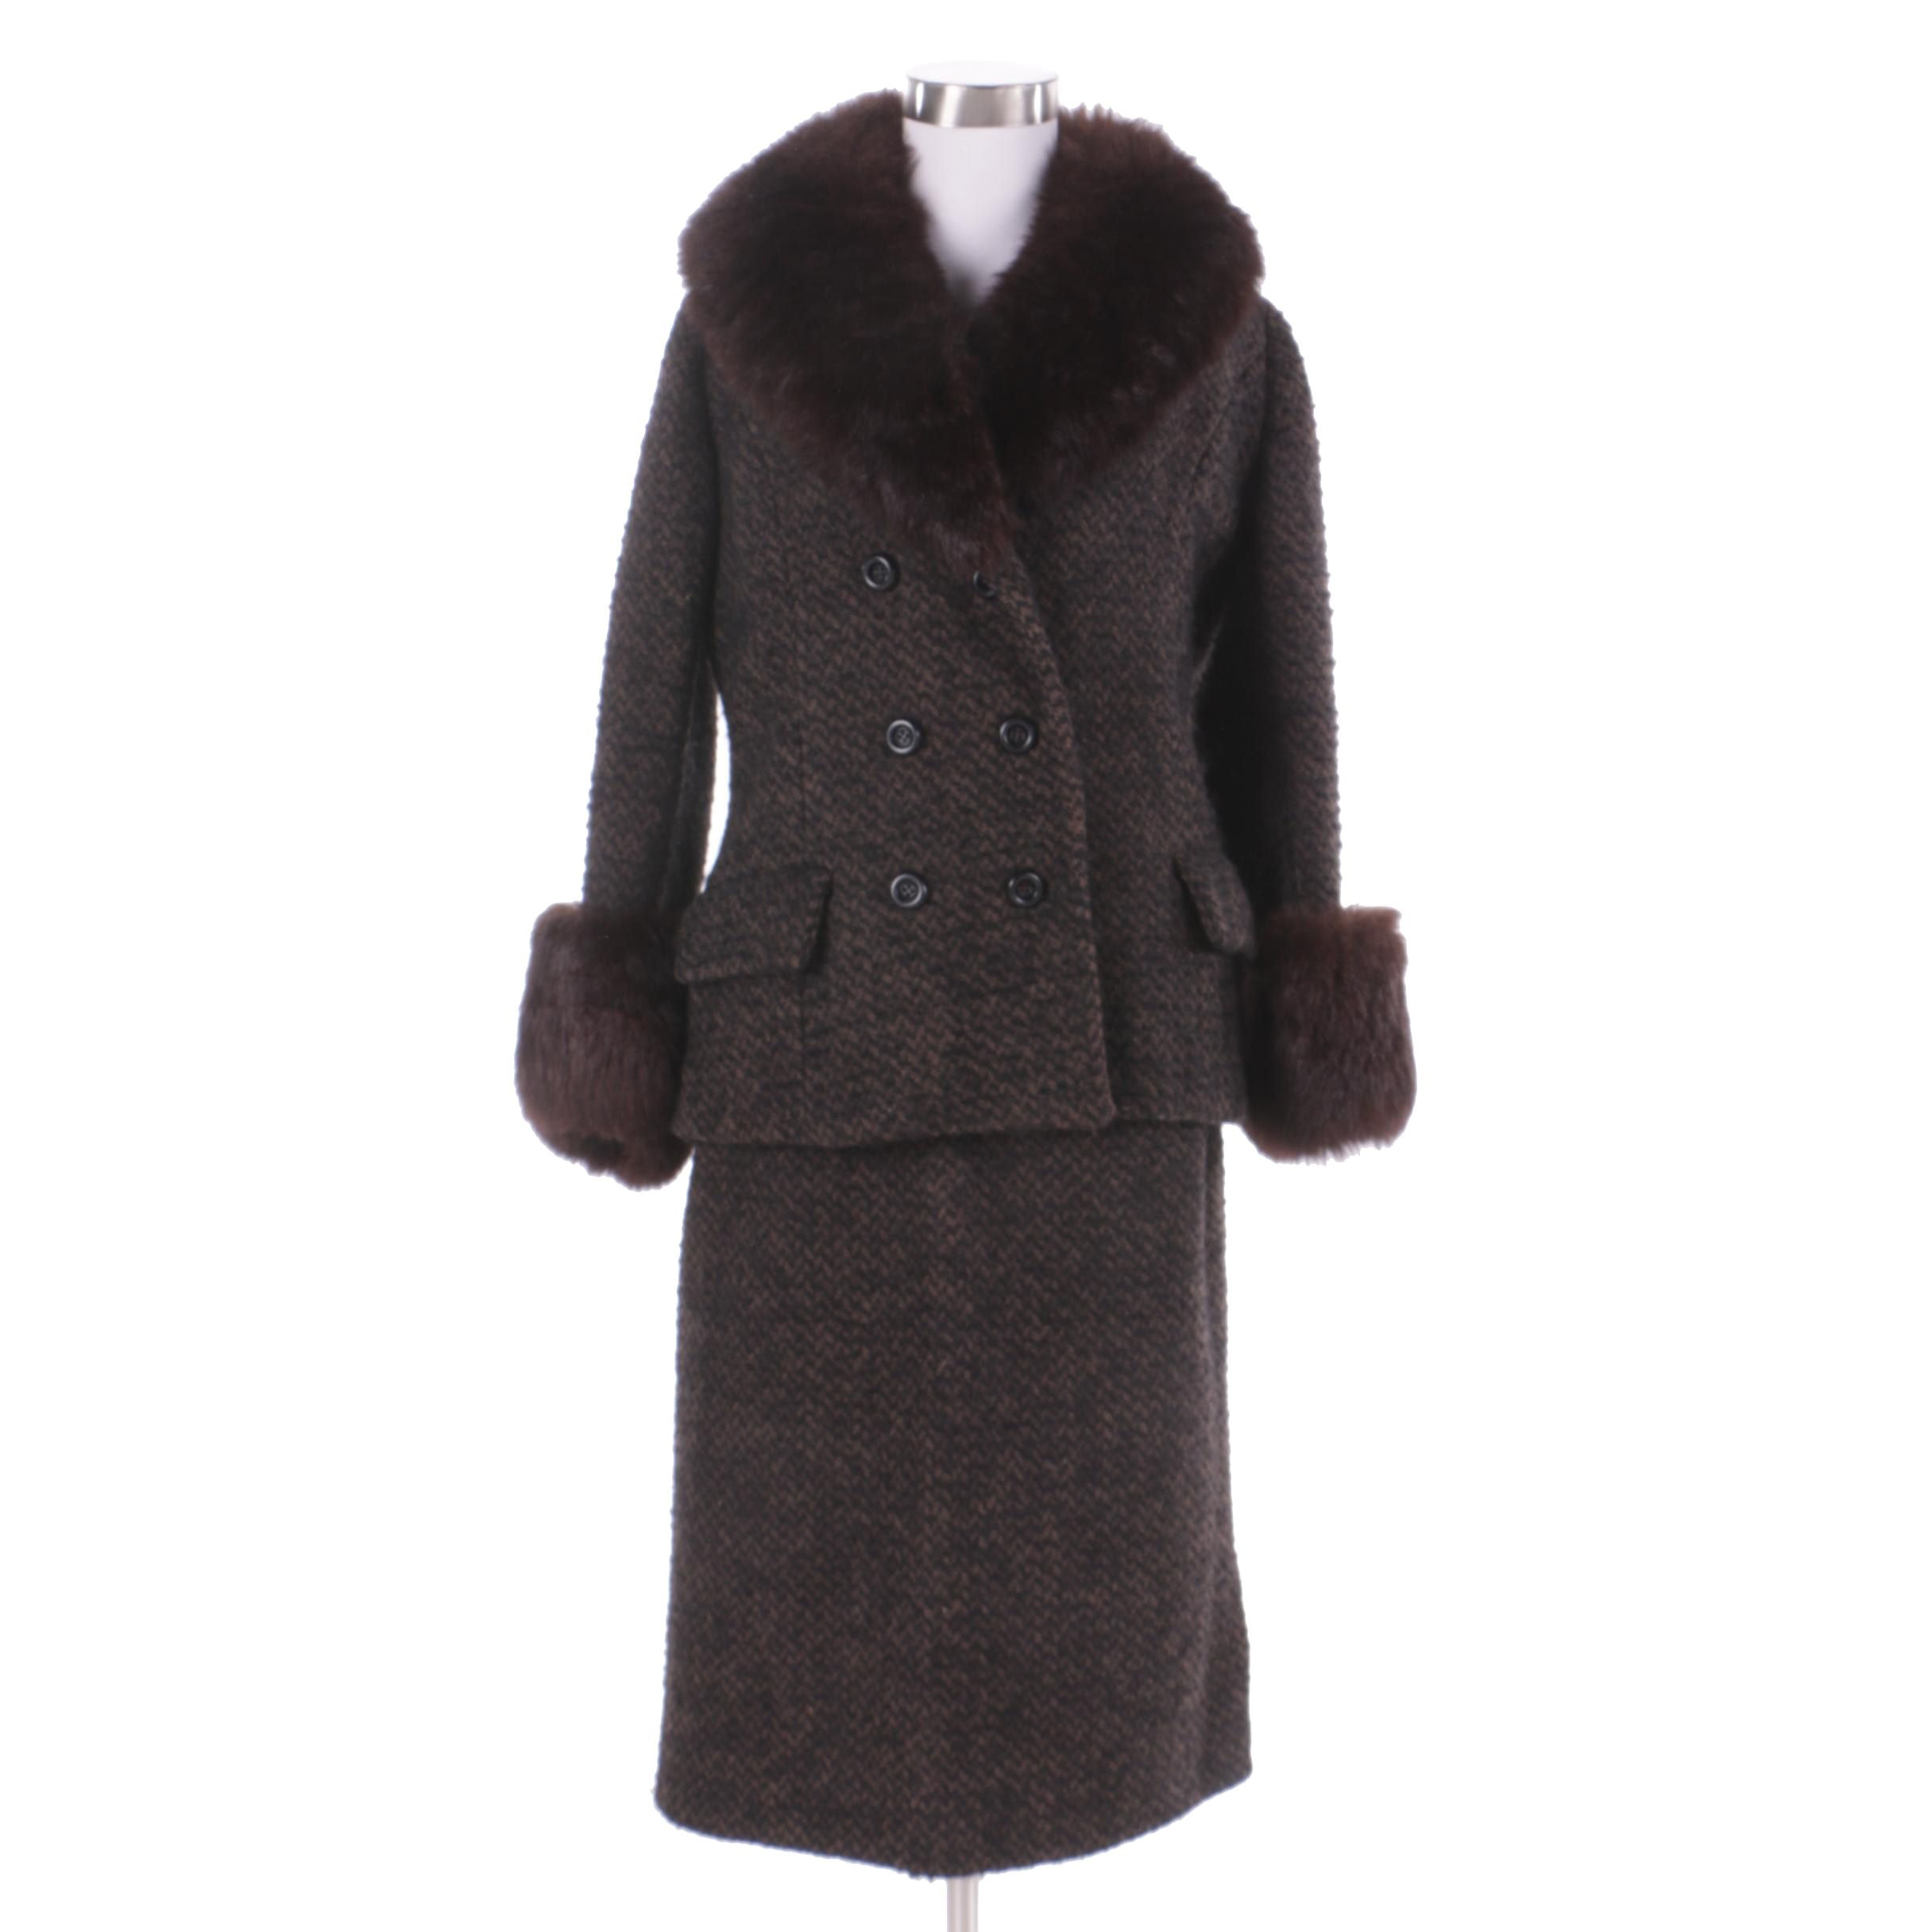 Women's Vintage Tweed Skirt Suit with Fox Fur Trim